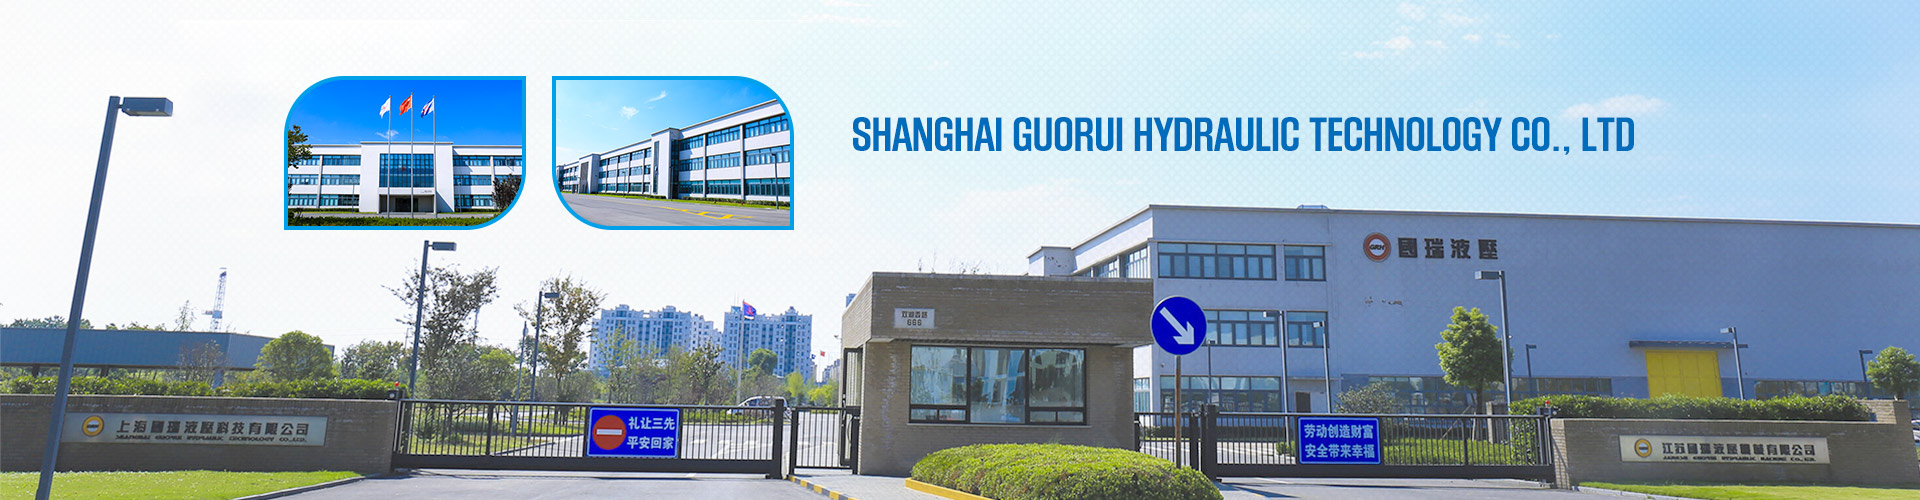 Shanghai Guorui uisgeach Technology Co., Ltd